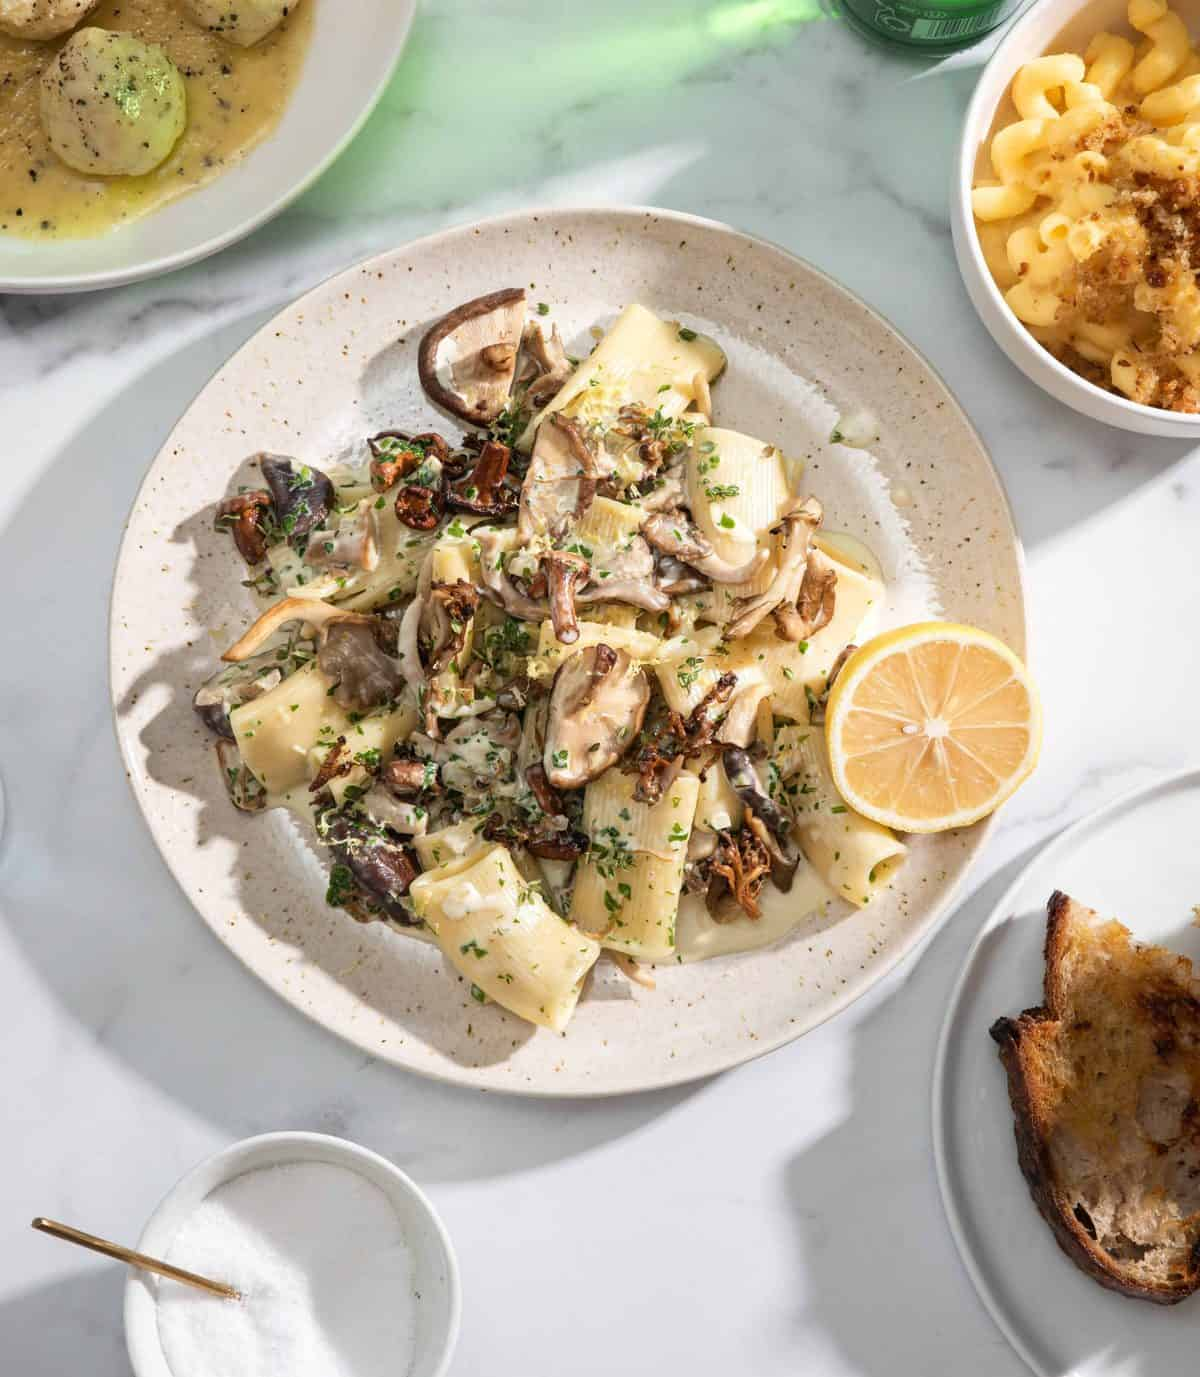 A bowl of Creamy Mushroom and Garlic Pasta on a ceramic plate with a lemon wheel.